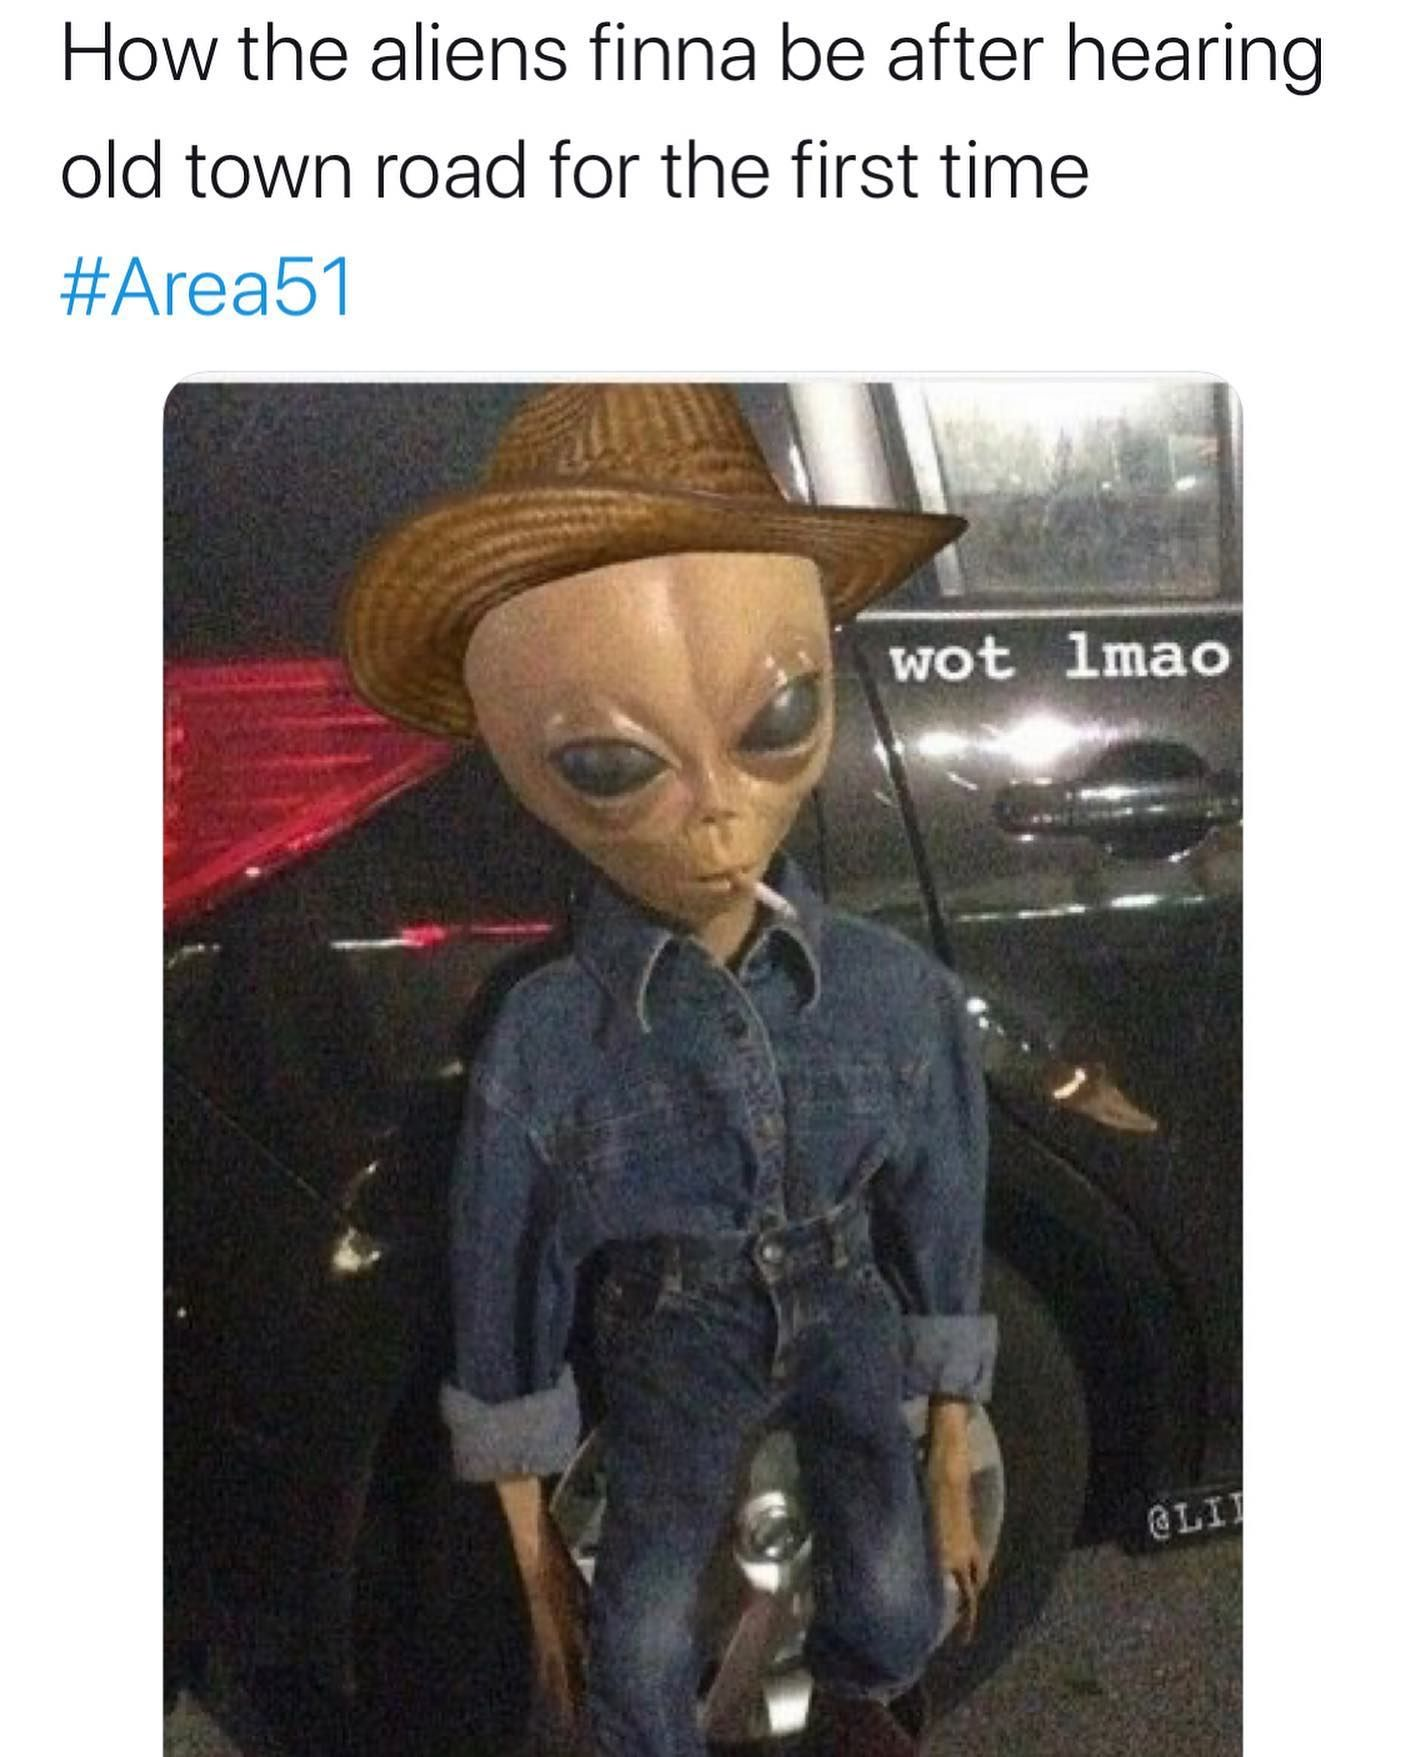 Image may contain: Area 51 memes, Area 51, meme, reaction, twitter, Las Vegas, Nevada, where, origin, explained, what is Area 51, alien, old town road, Figurine, Jeans, Denim, Person, Human, Pants, Apparel, Clothing, Hat